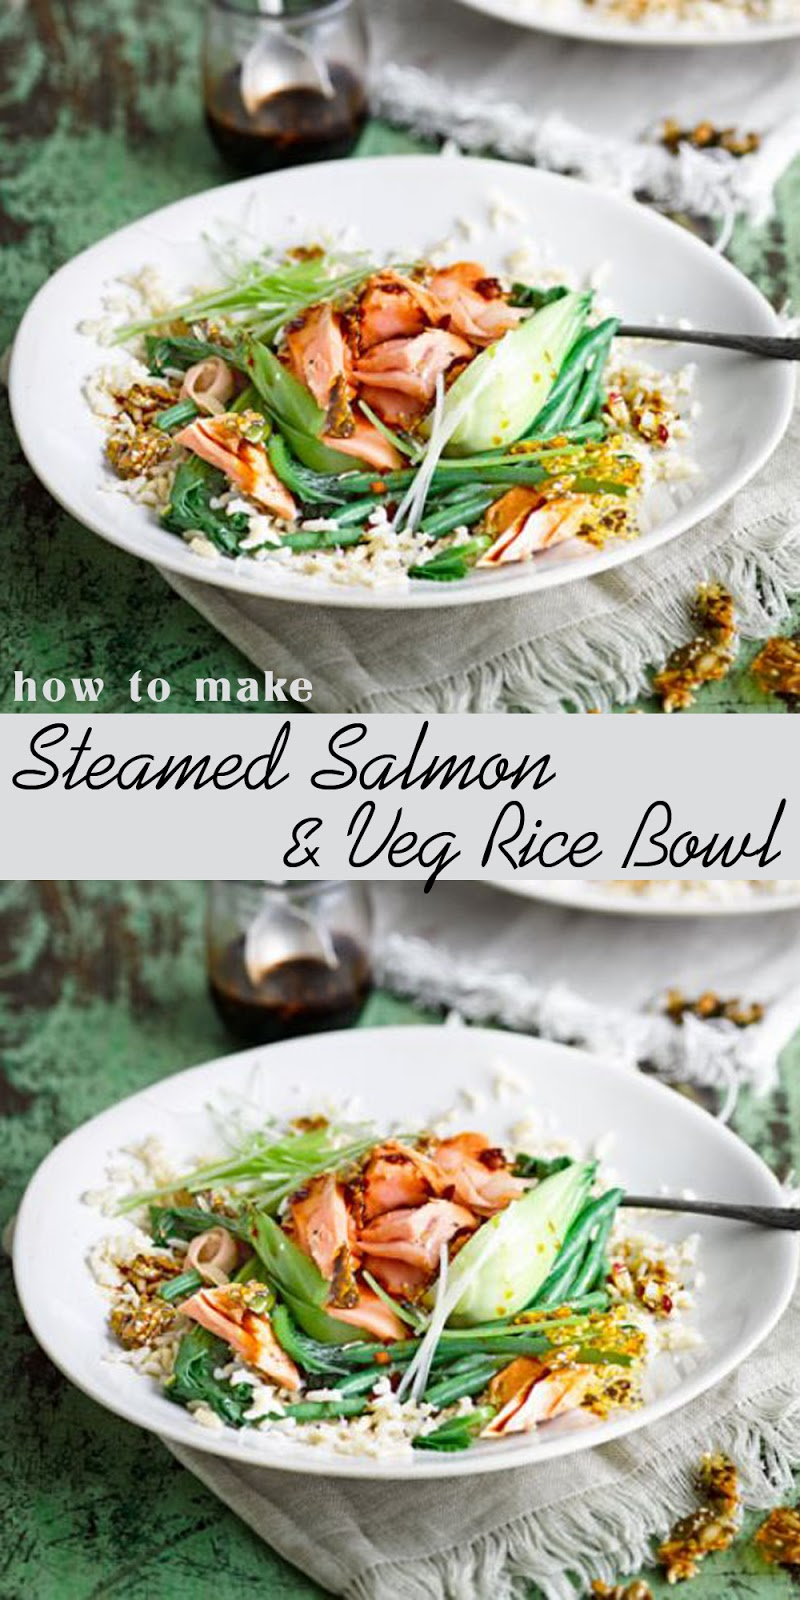 STEAMED SALMON & VEG RICE BOWL